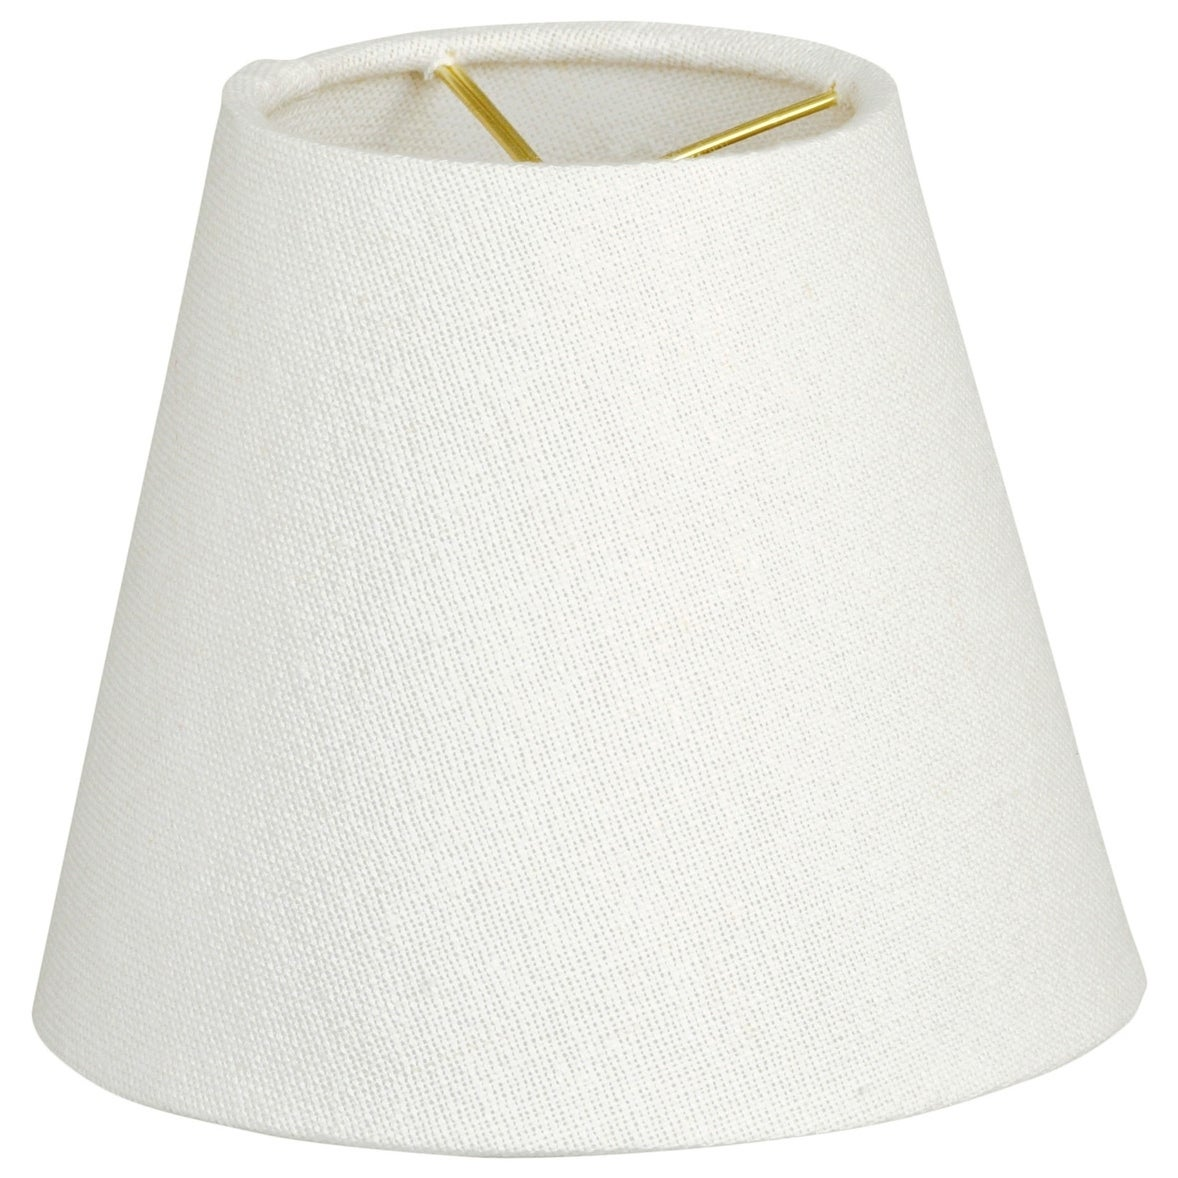 Royal Designs Hardback Empire Linen White 4 X 6 X 5 5 Inch Clip On Chandelier Lamp Shade Set Of 6 Overstock 15296388